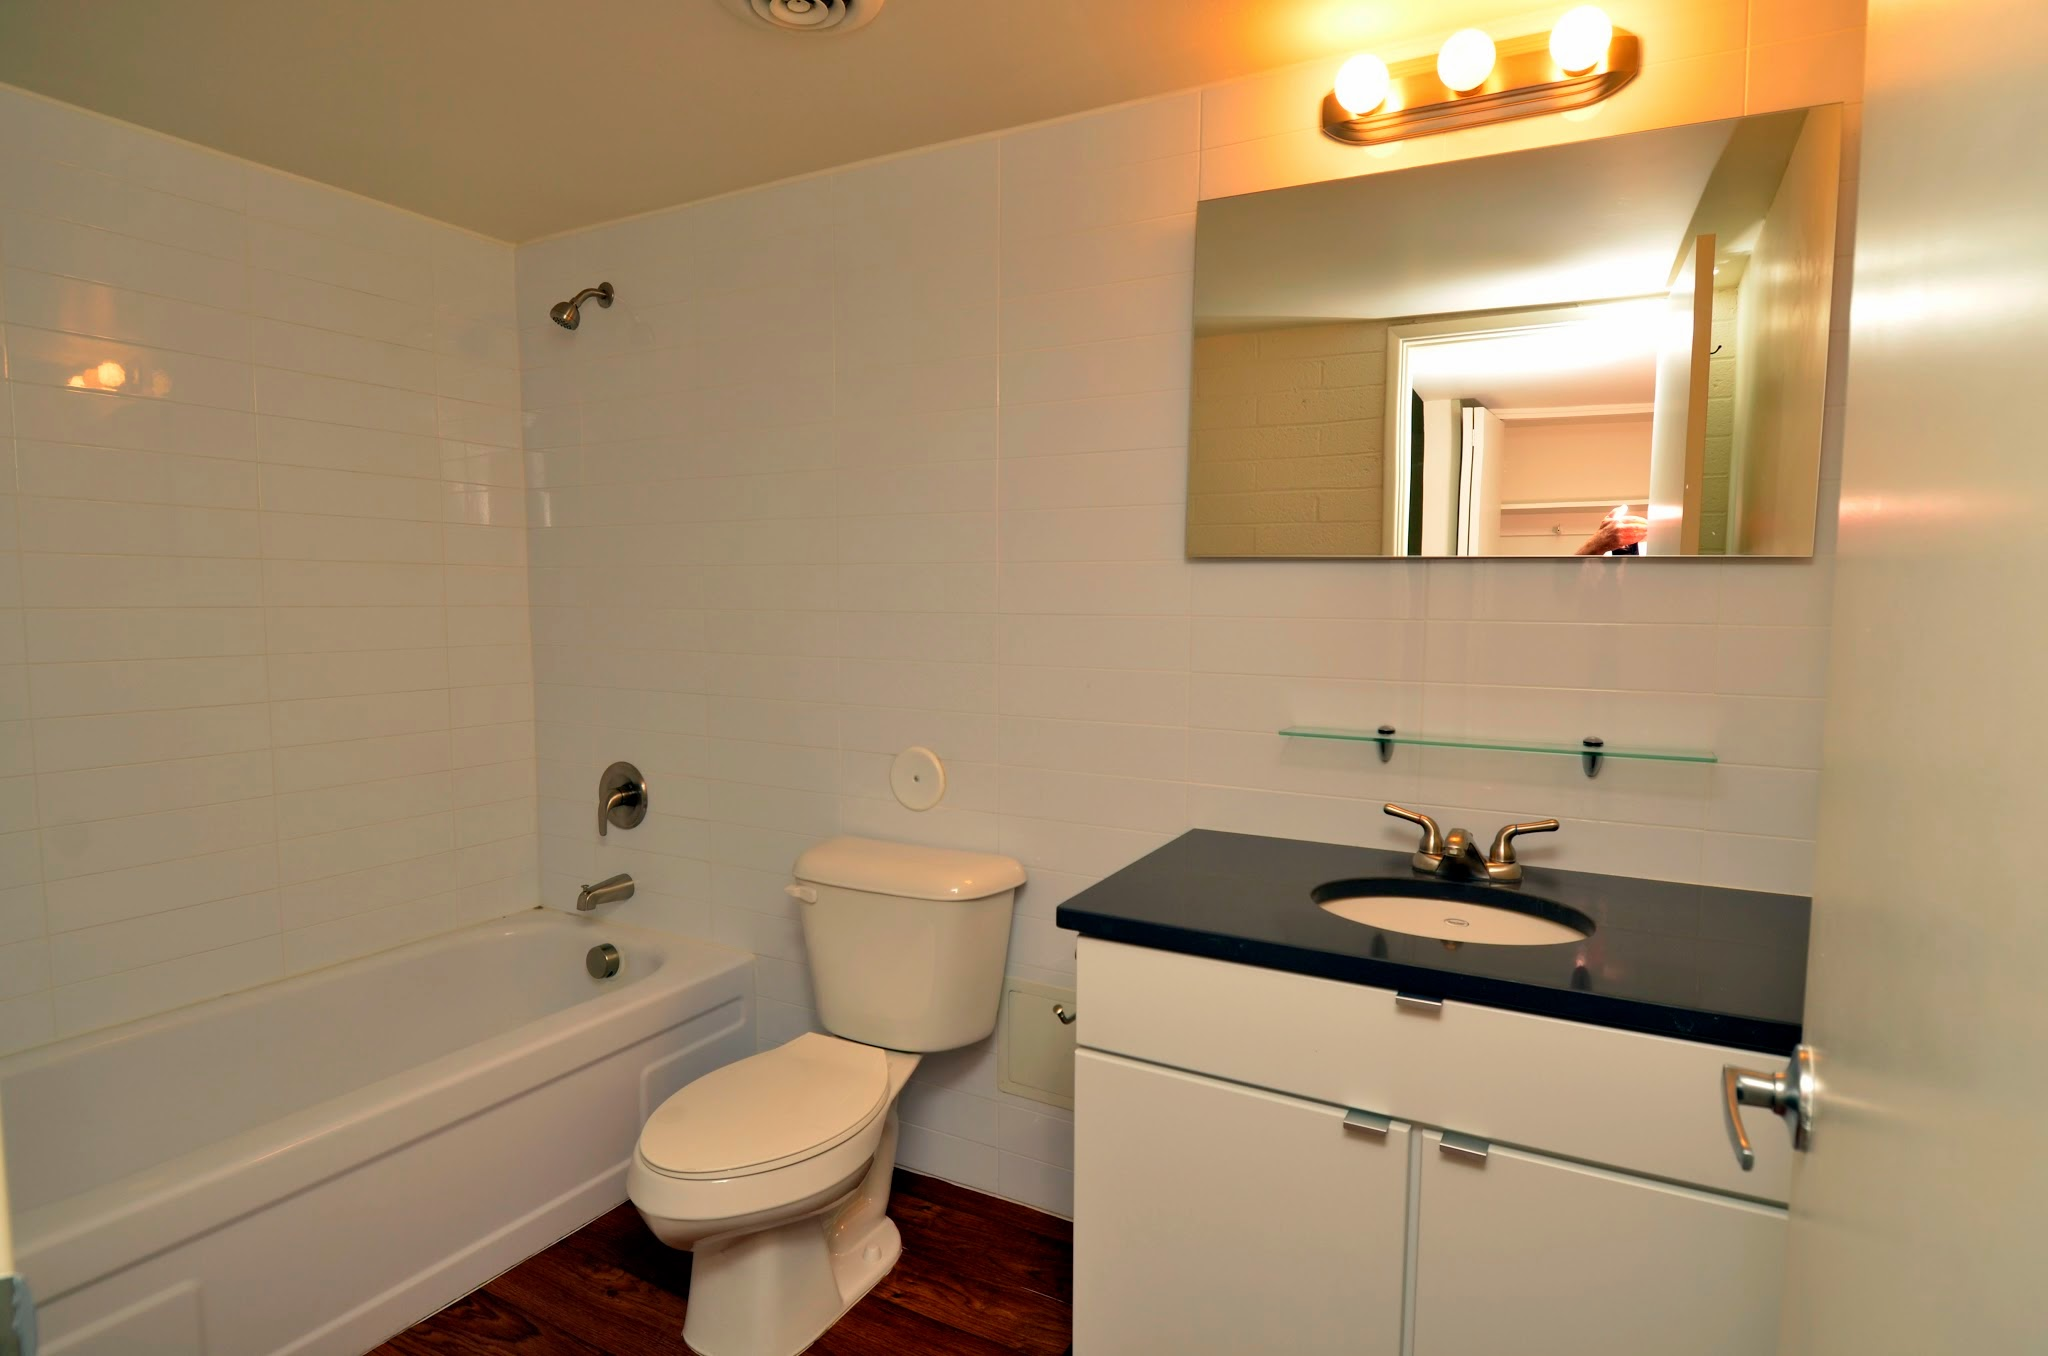 Spacious Bathrooms at The Winfield of Scottsdale Apartments in Scottsdale, Arizona